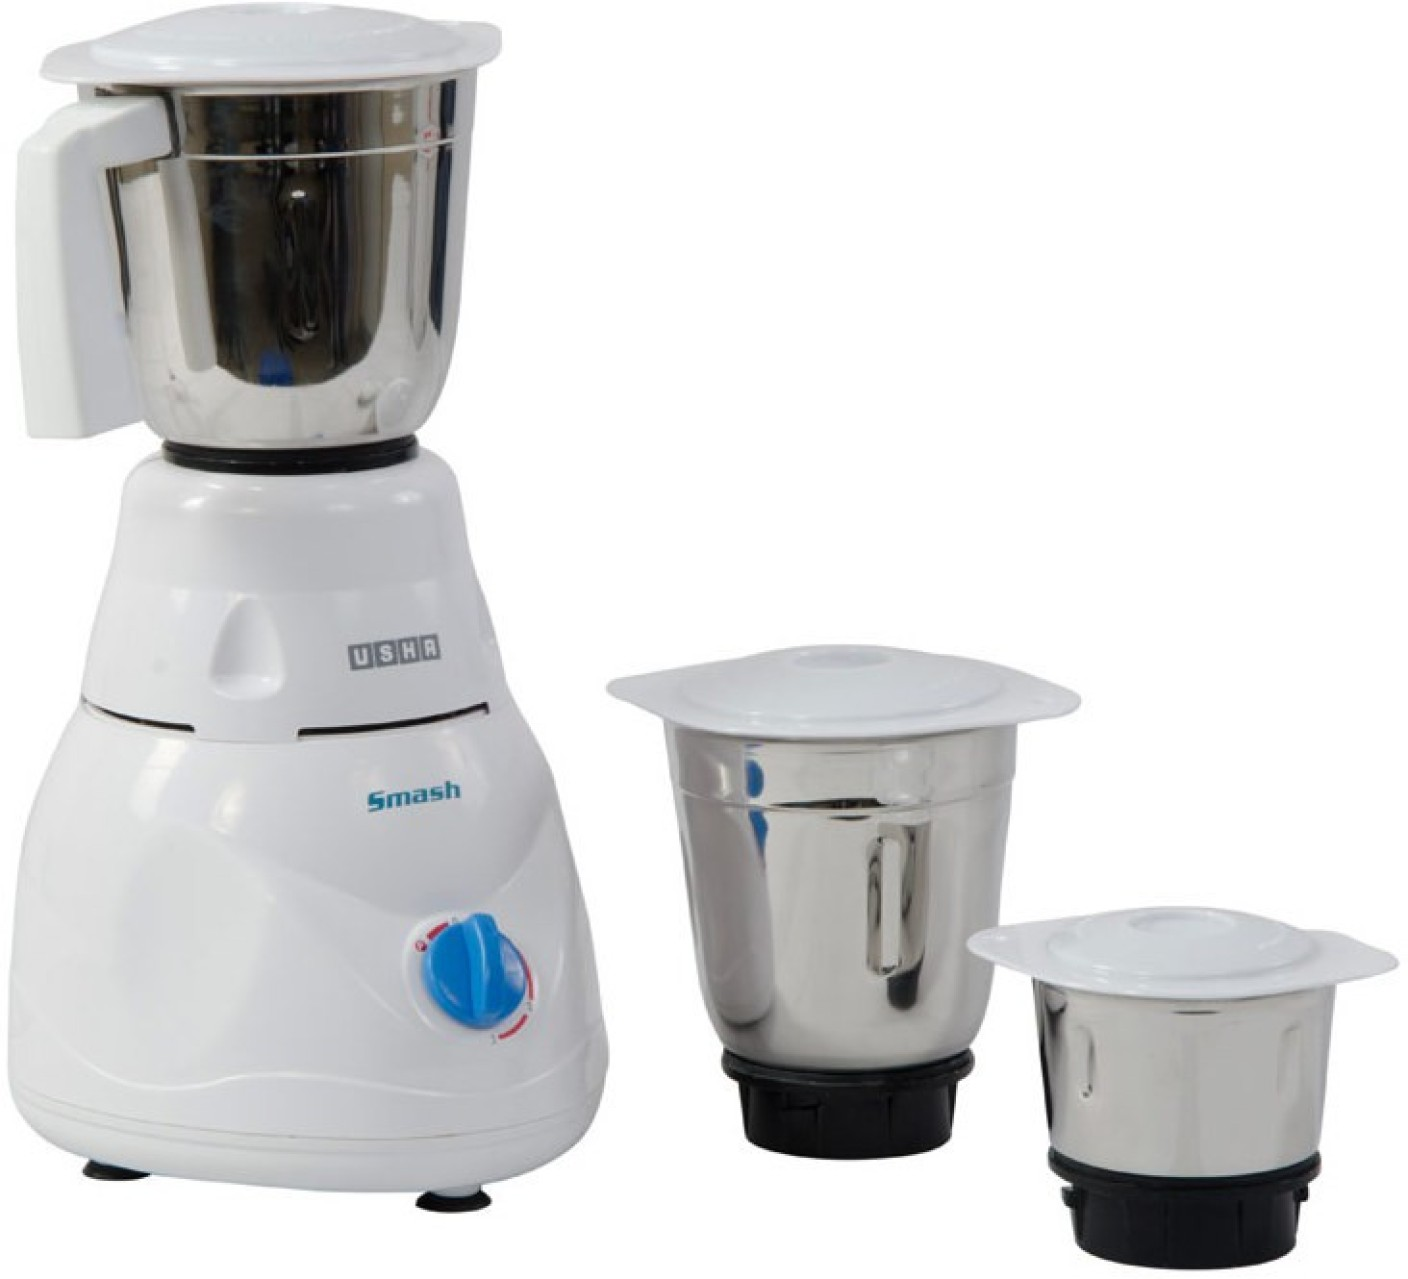 Mixer Grinder Blades : Usha mg smash w mixer grinder price in india